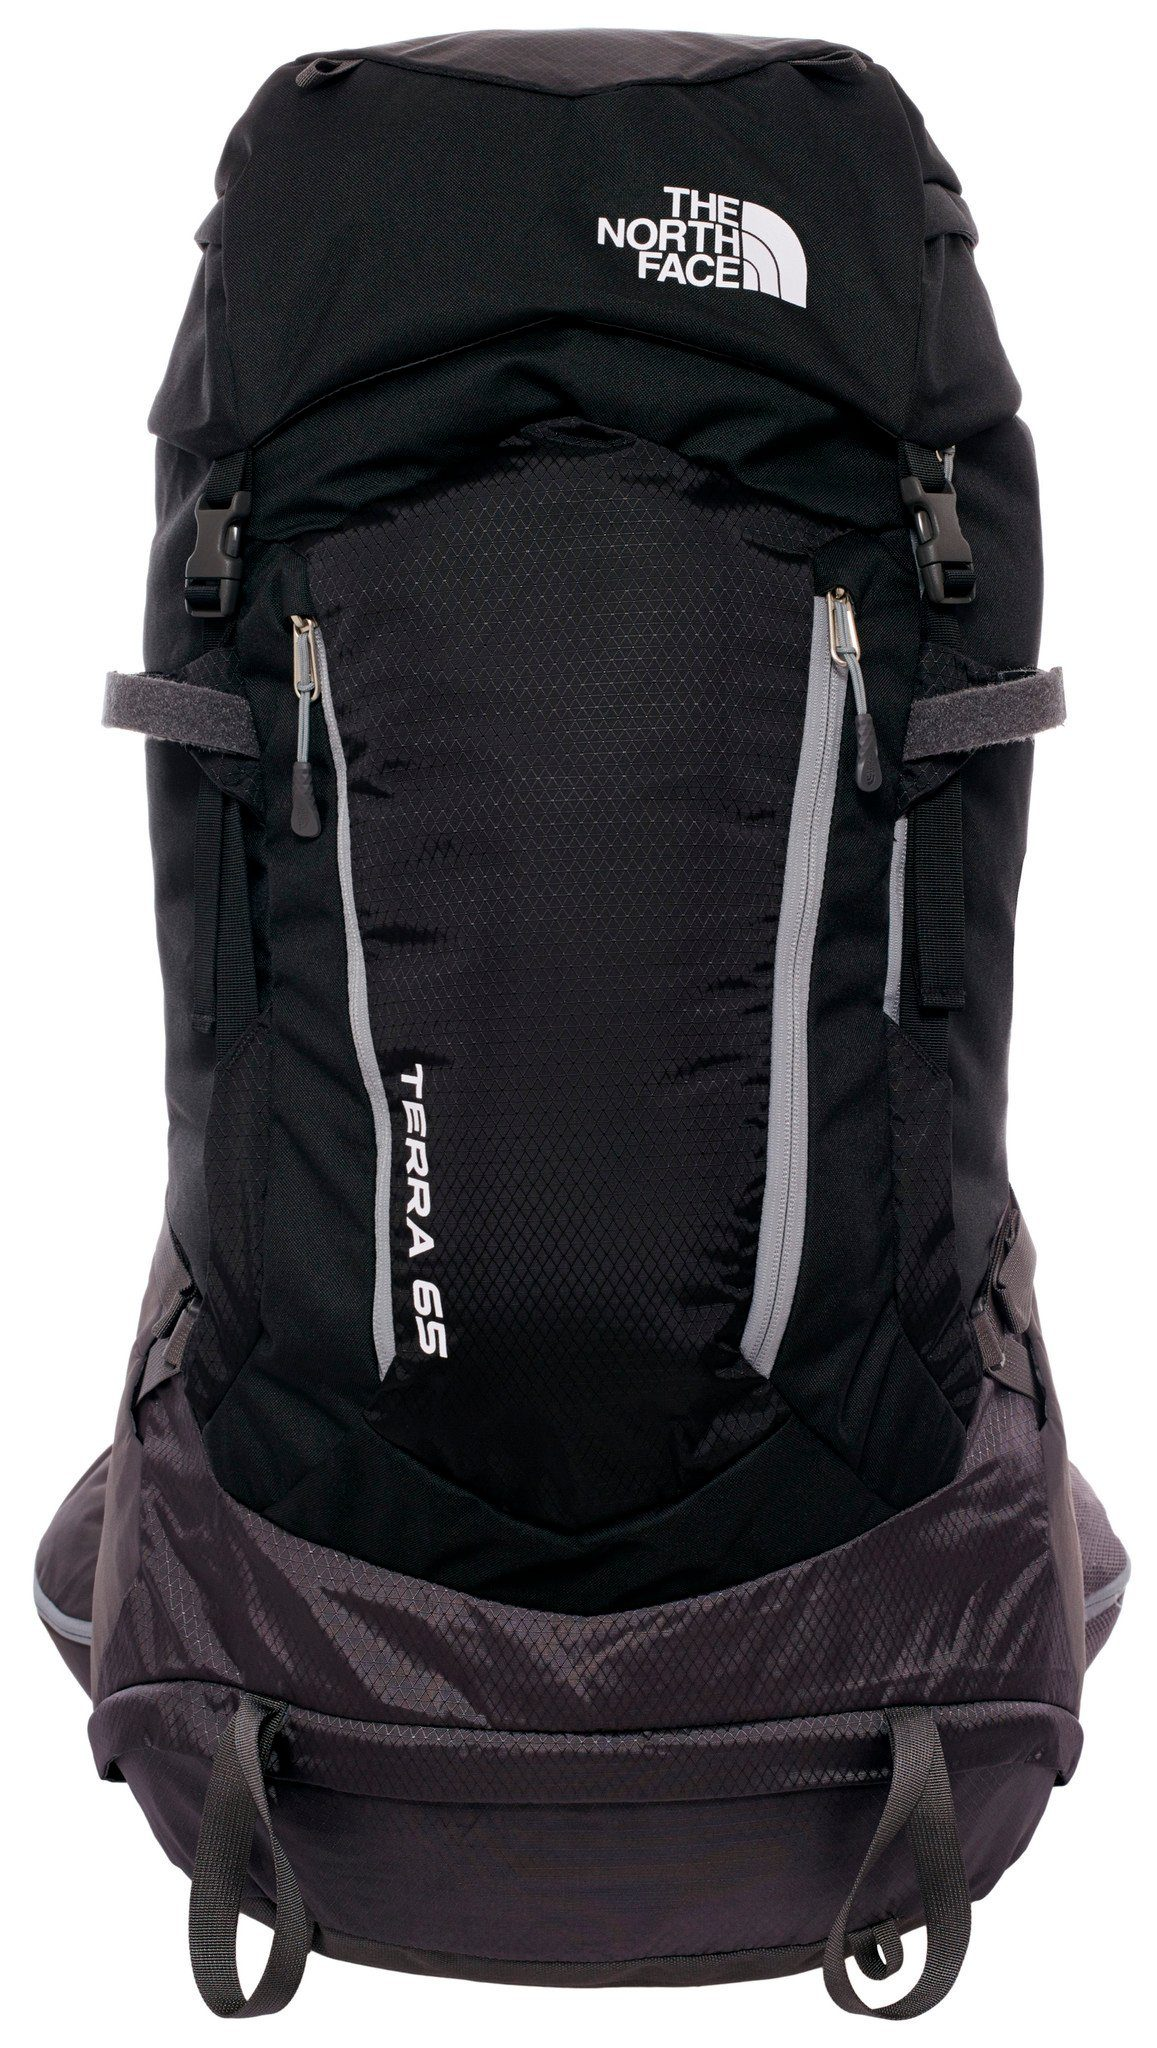 The North Face Wanderrucksack »Terra 65 Backpack L/XL«